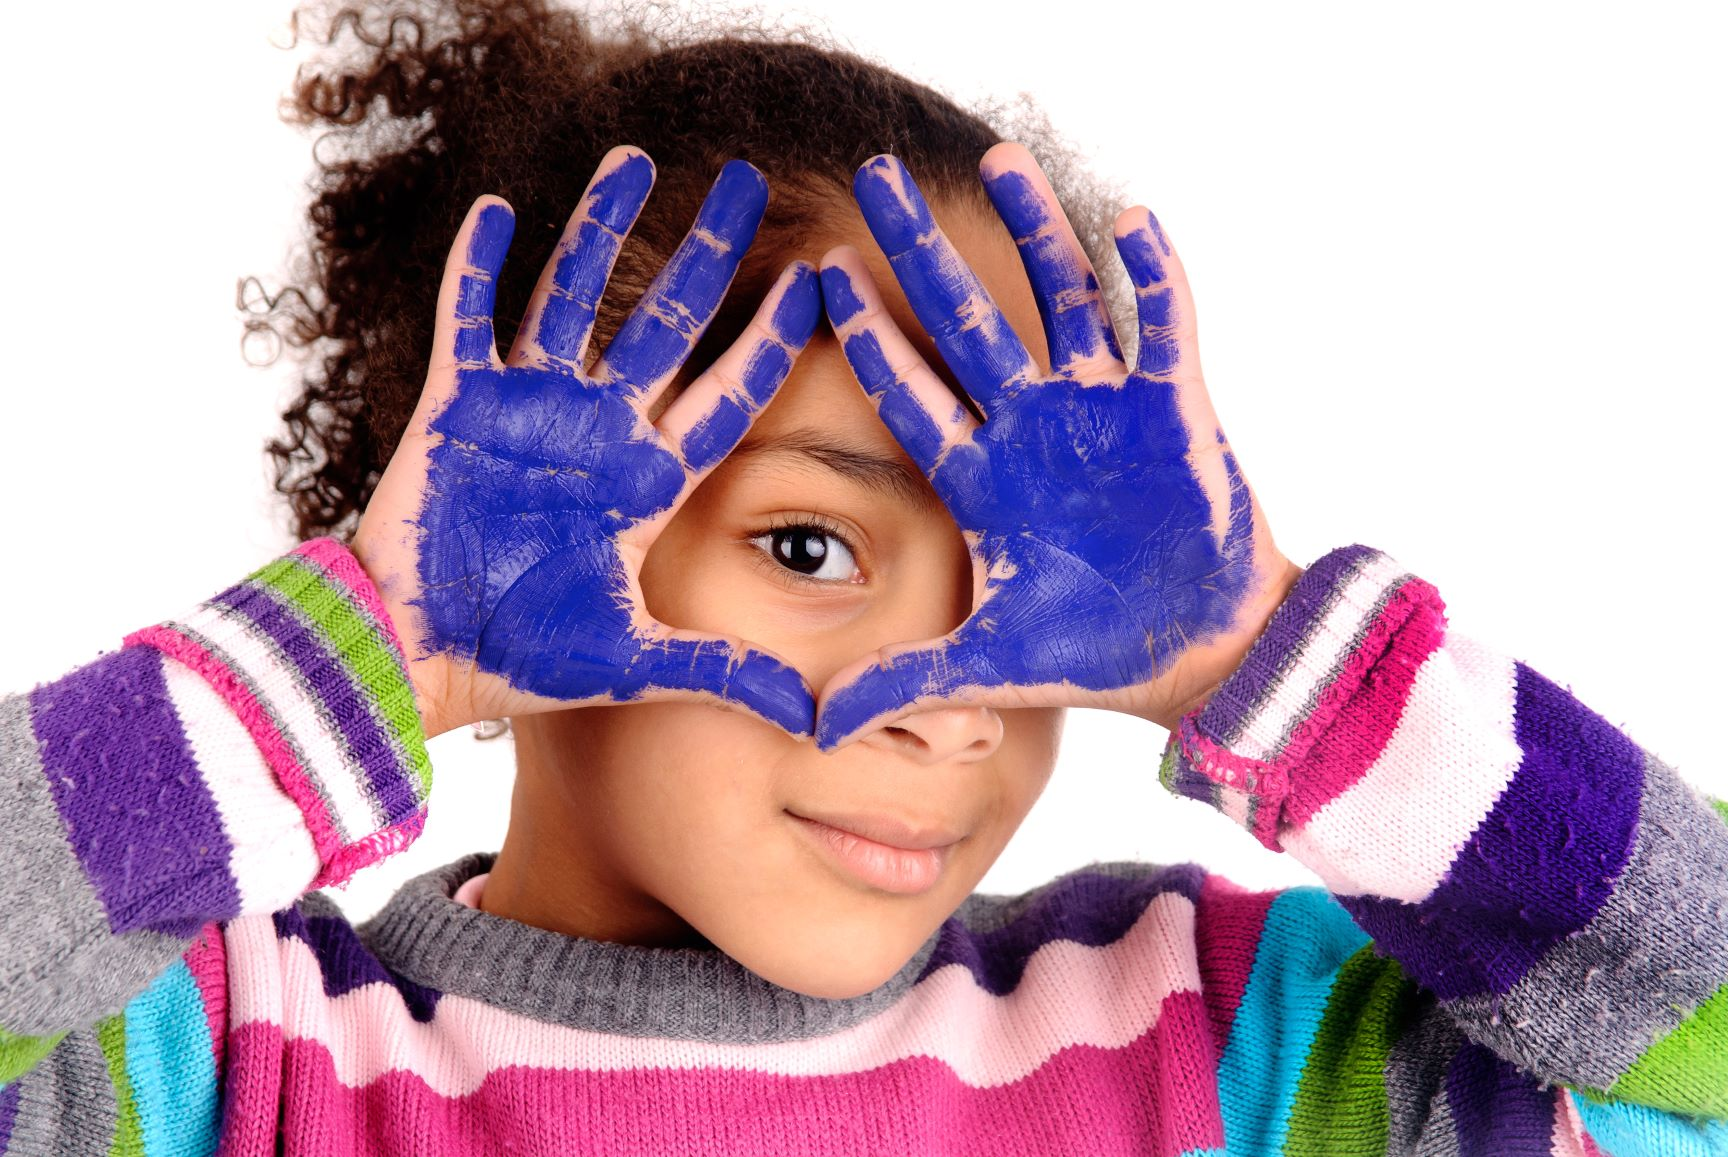 girl with colorful striped sweather and purple paint on her hands, looking through her hands with one eye